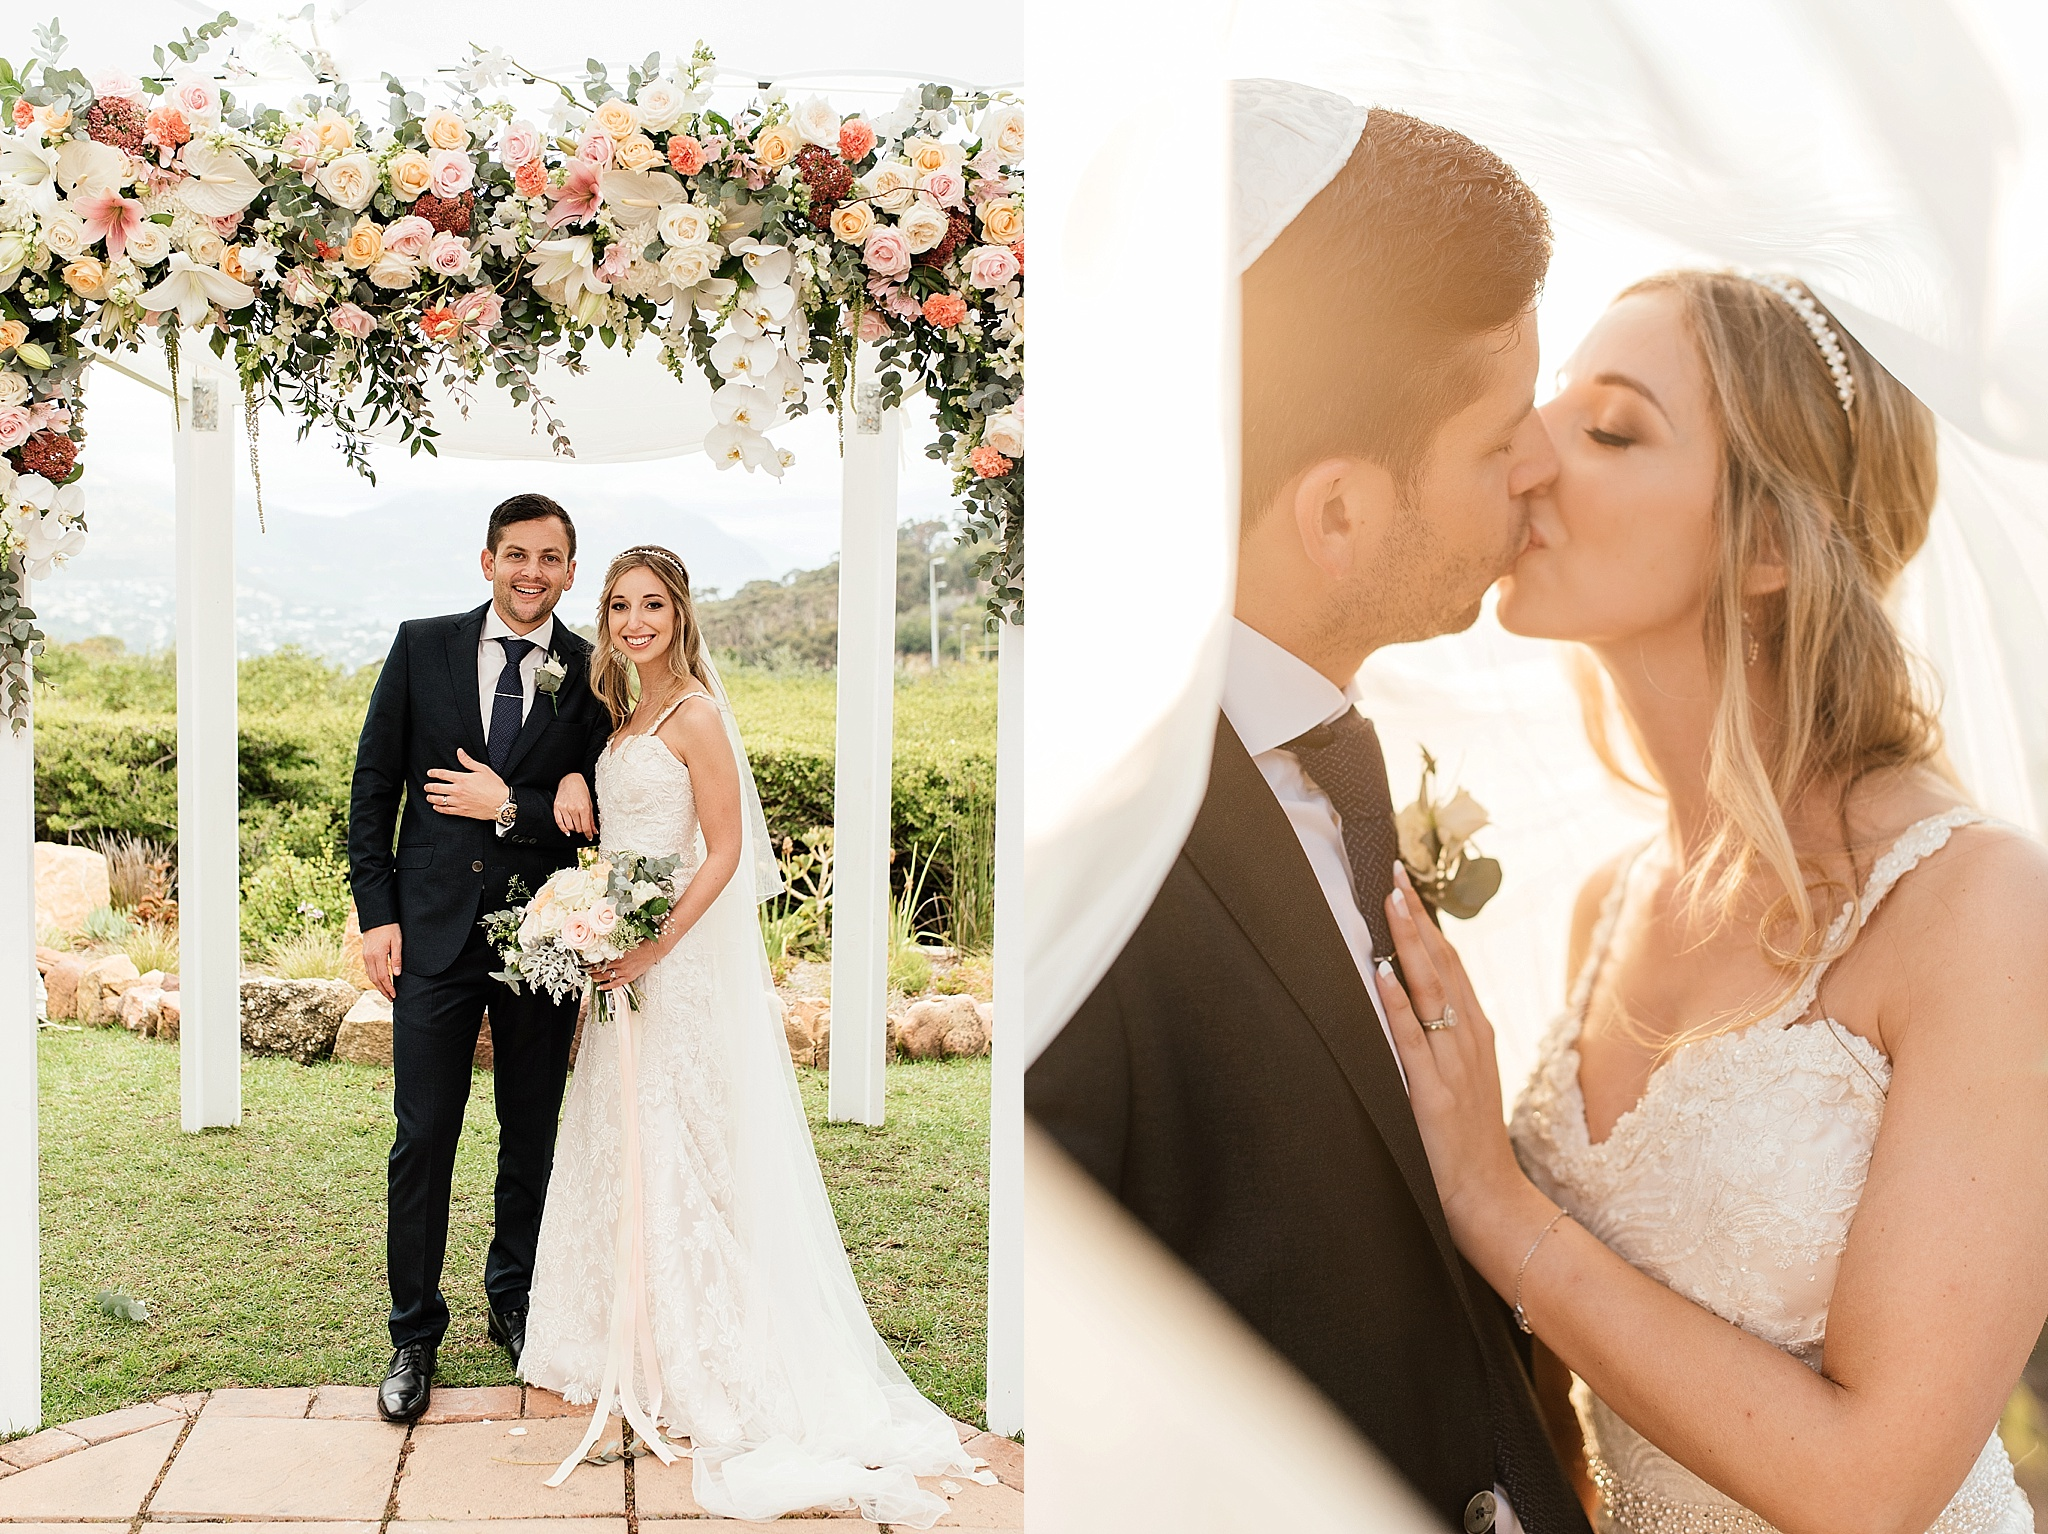 Cape Town Wedding Photographer Darren Bester - SuikerBossie - Stephen and Mikaela_0038.jpg